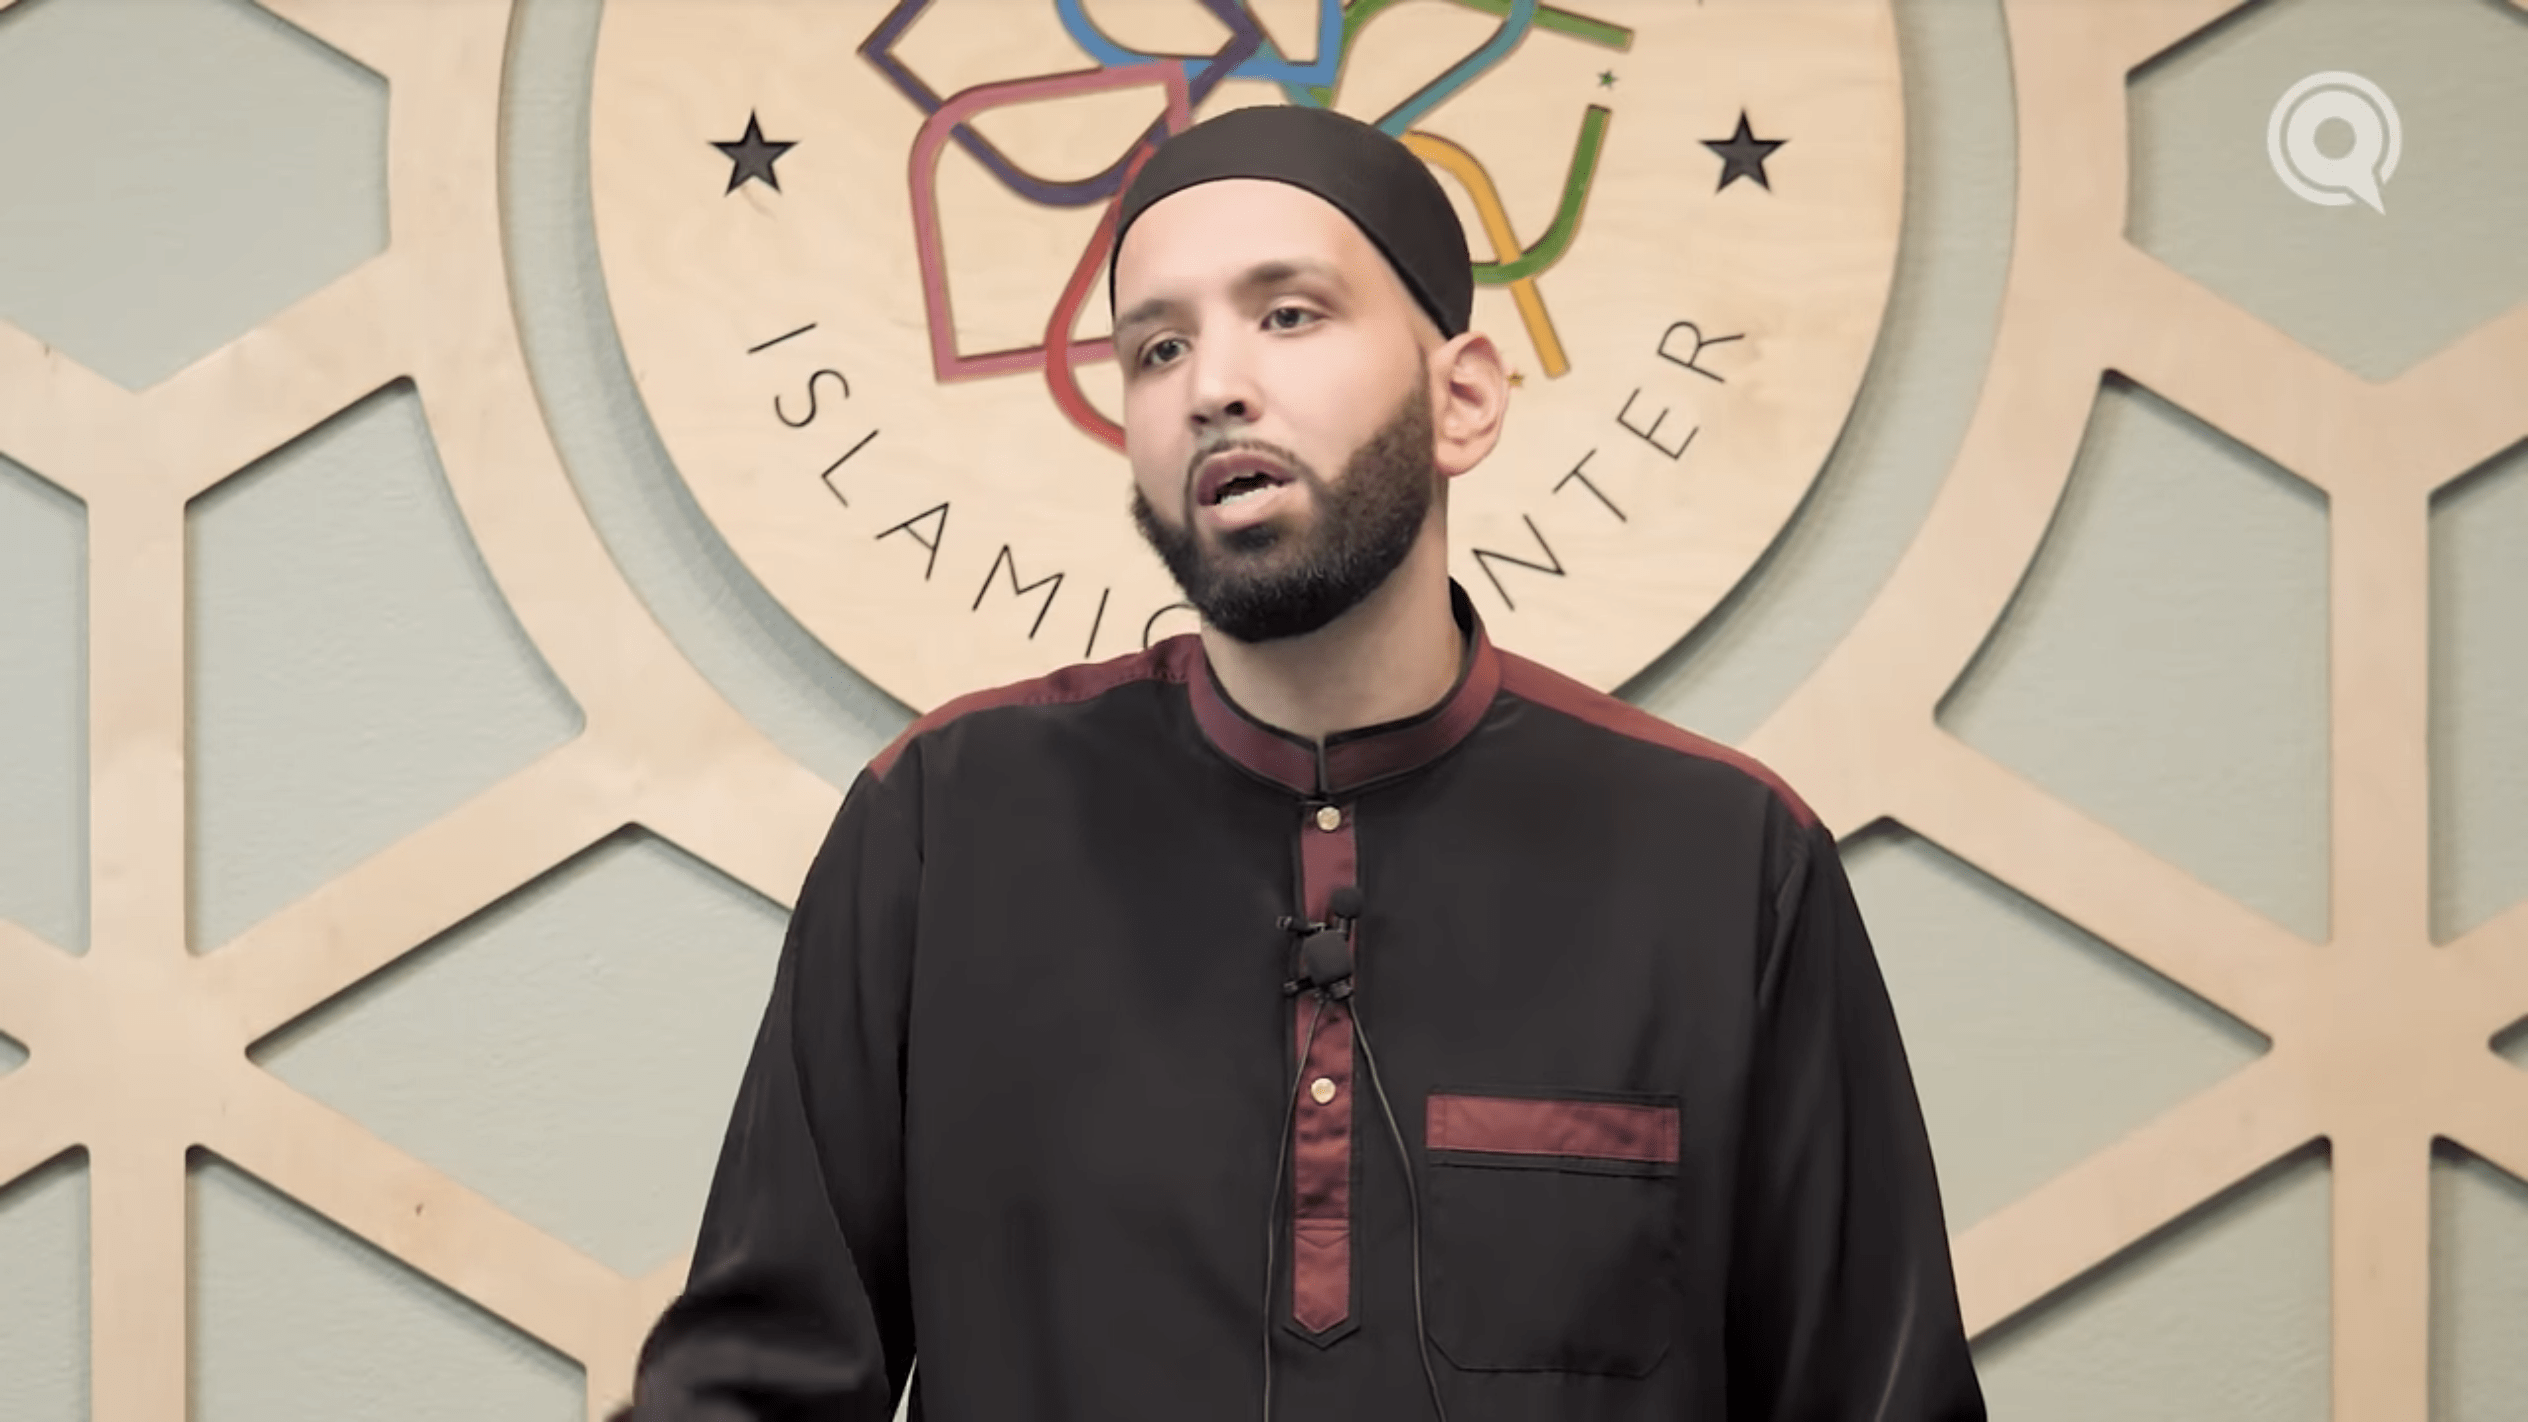 Omar Suleiman – Contextualizing the Life and Mission of Jesus